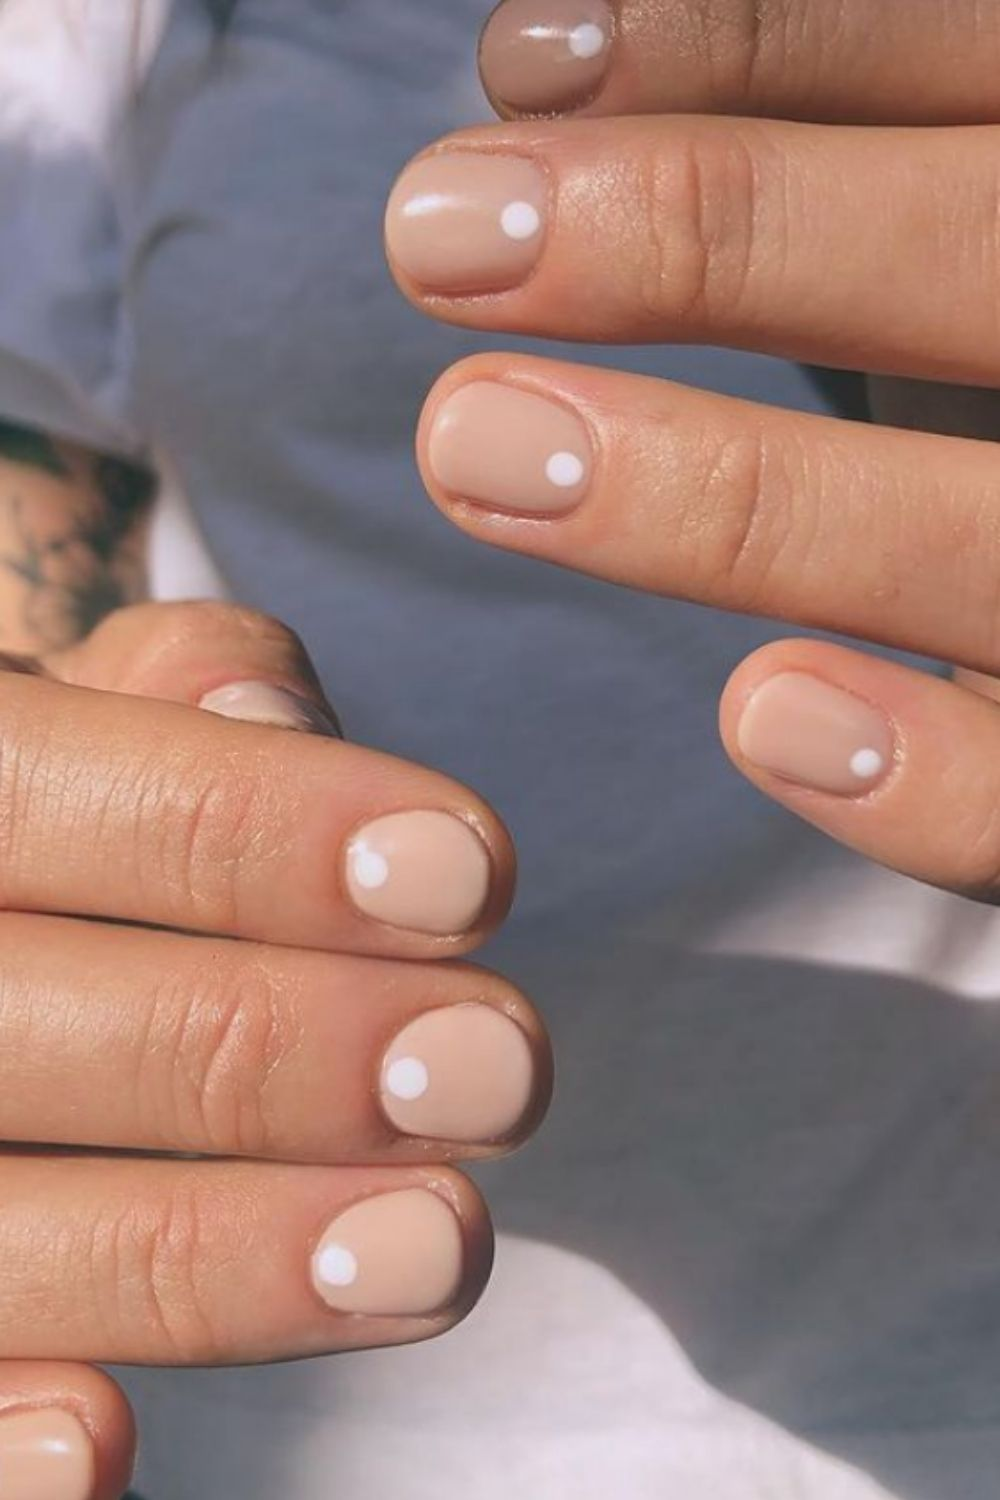 Nude nails | stunning natural nail designs you're going to want to try ASAP